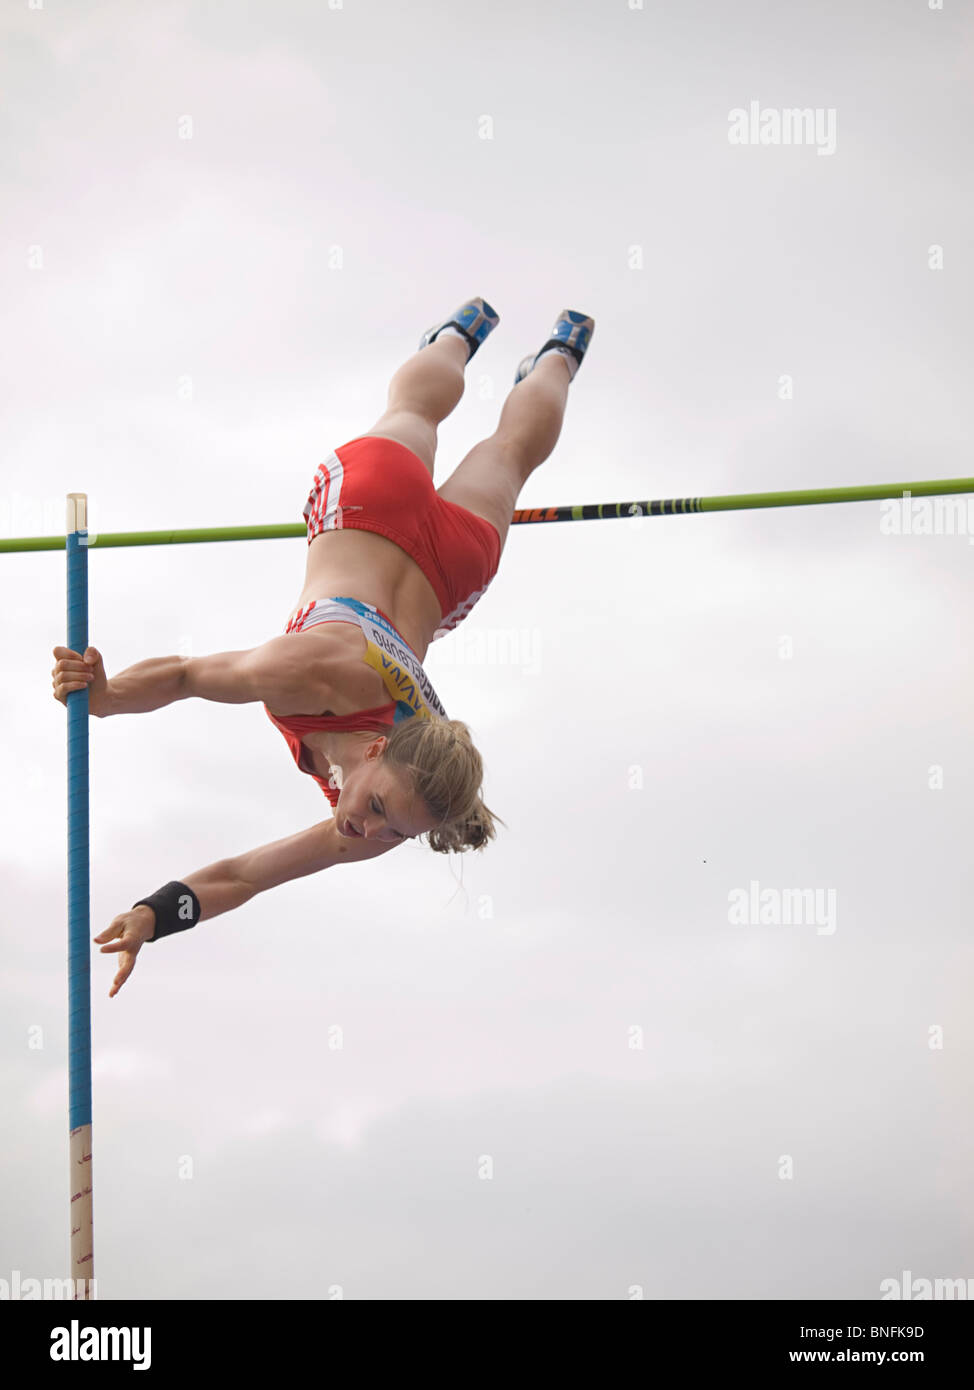 German Athlete Silke Spigelburg  during the Pole Vault competition in the Diamond Leage Aviva British Grand Prix - Stock Image